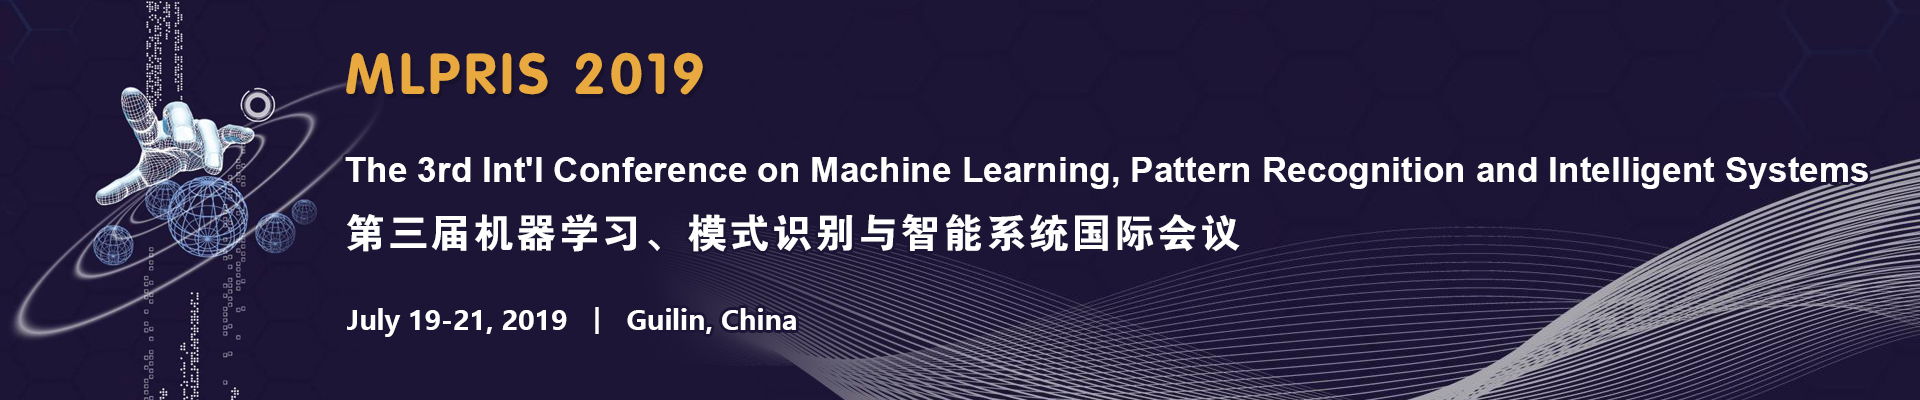 The 3rd Int'l Conference on Machine Learning, Pattern Recognition and Intelligent Systems (MLPRIS 2019), Guilin, Guangxi, China